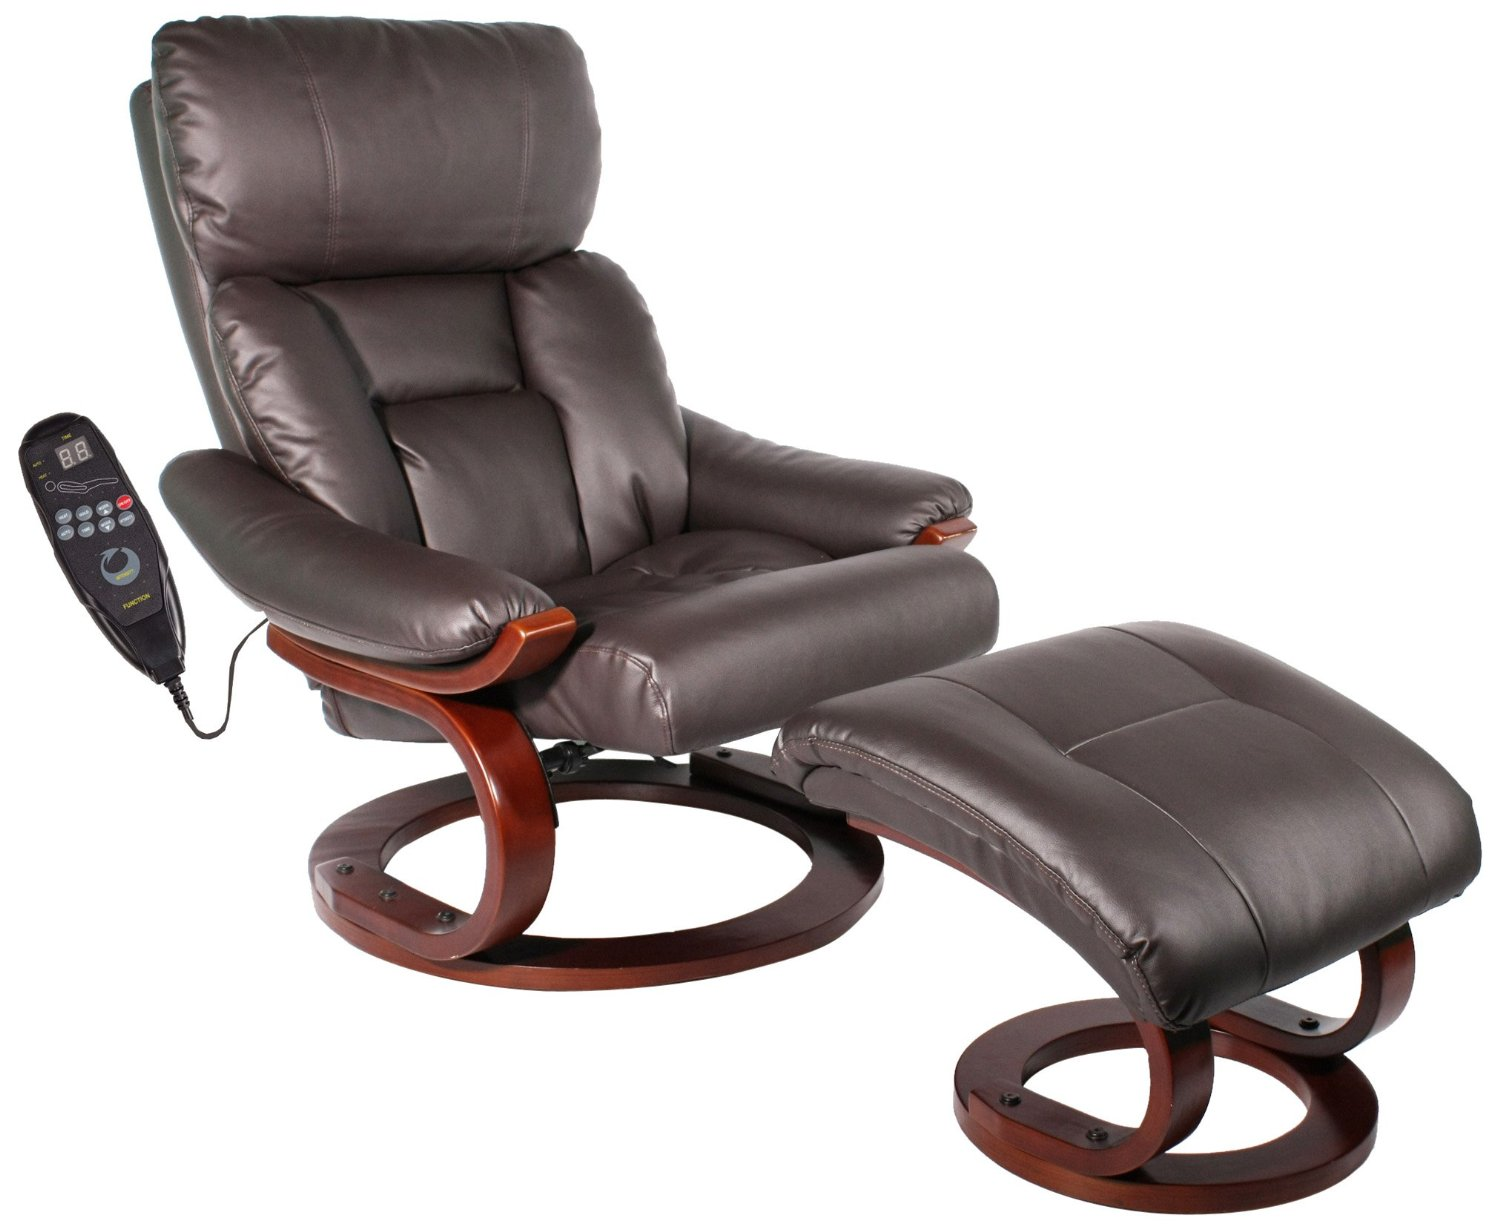 Ordinaire Comfort Vantin Deluxe Massaging Recliner And Ottoman Review   Massage Chair  HQ